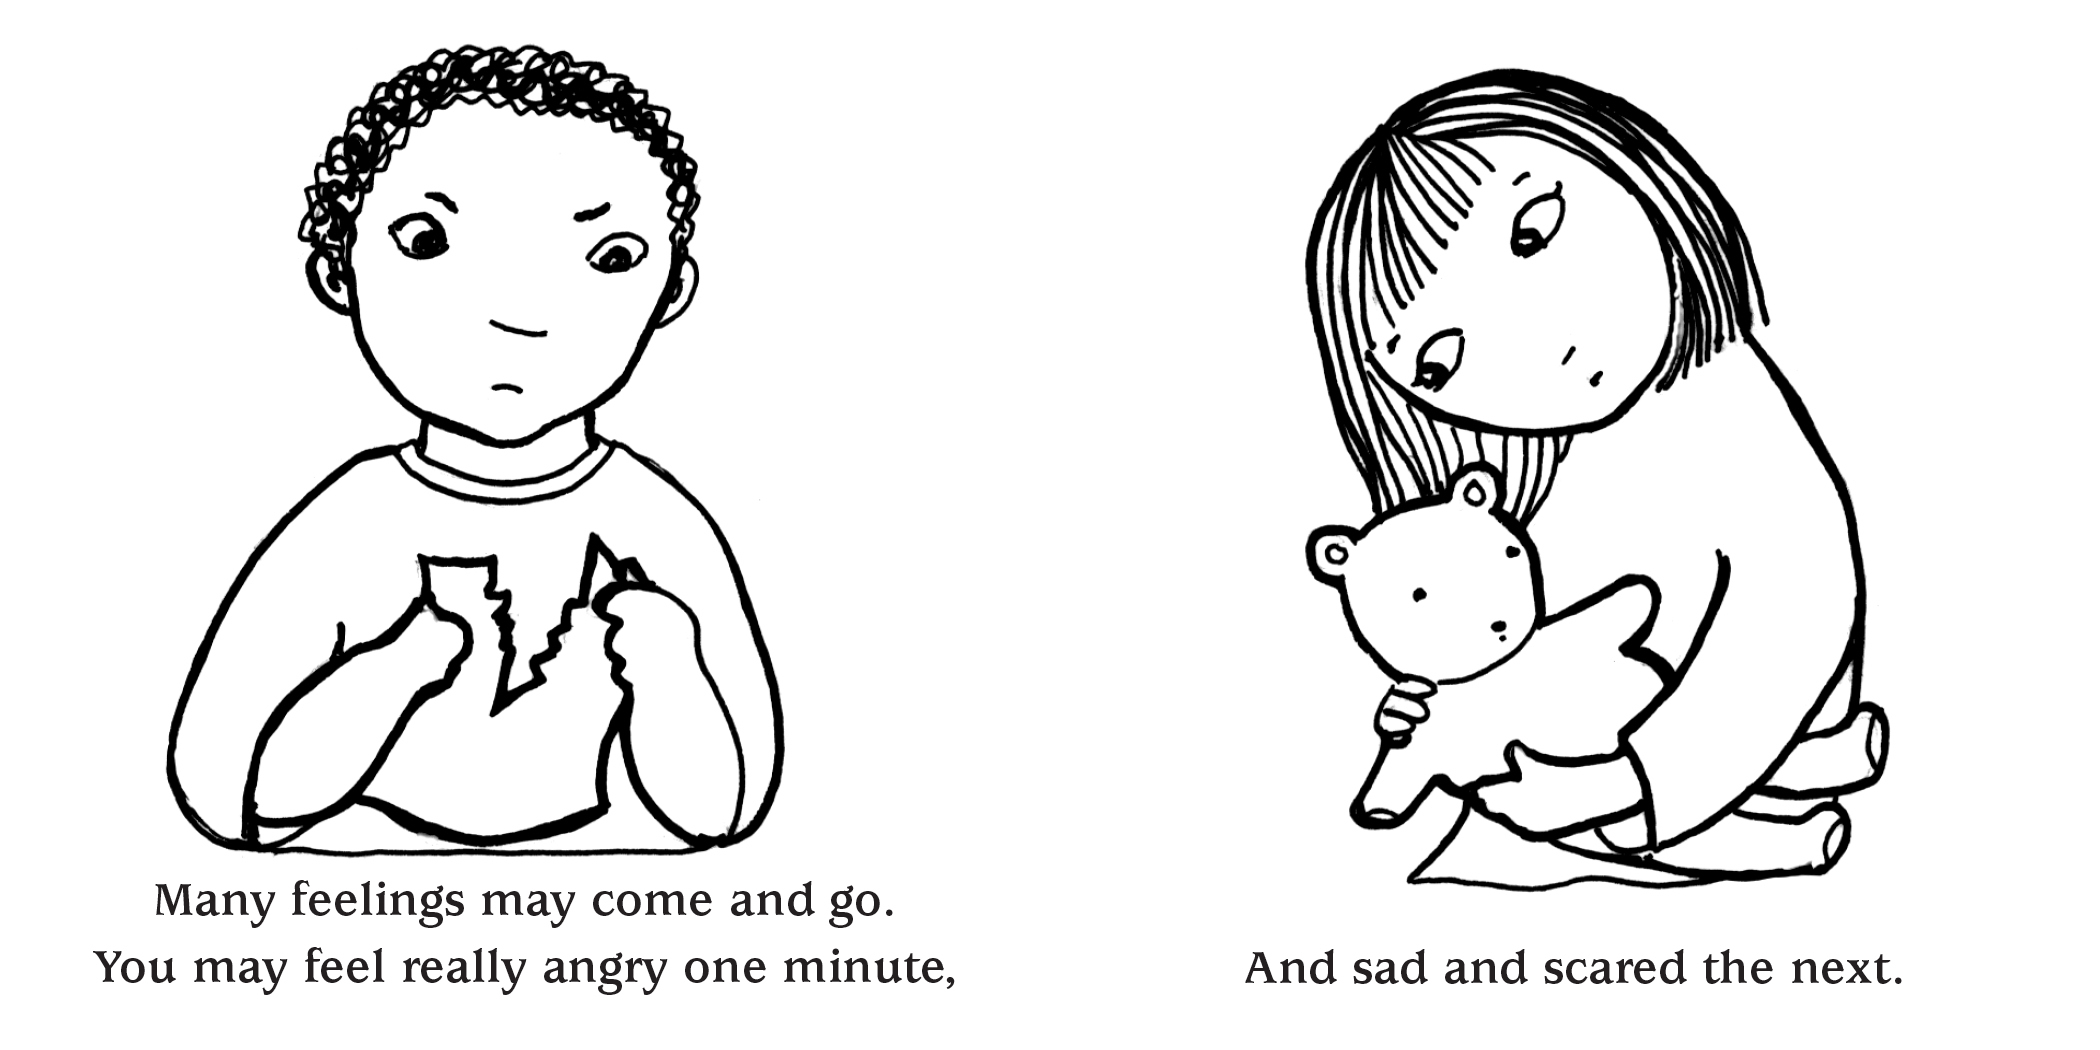 coloring pages on grief - photo#7